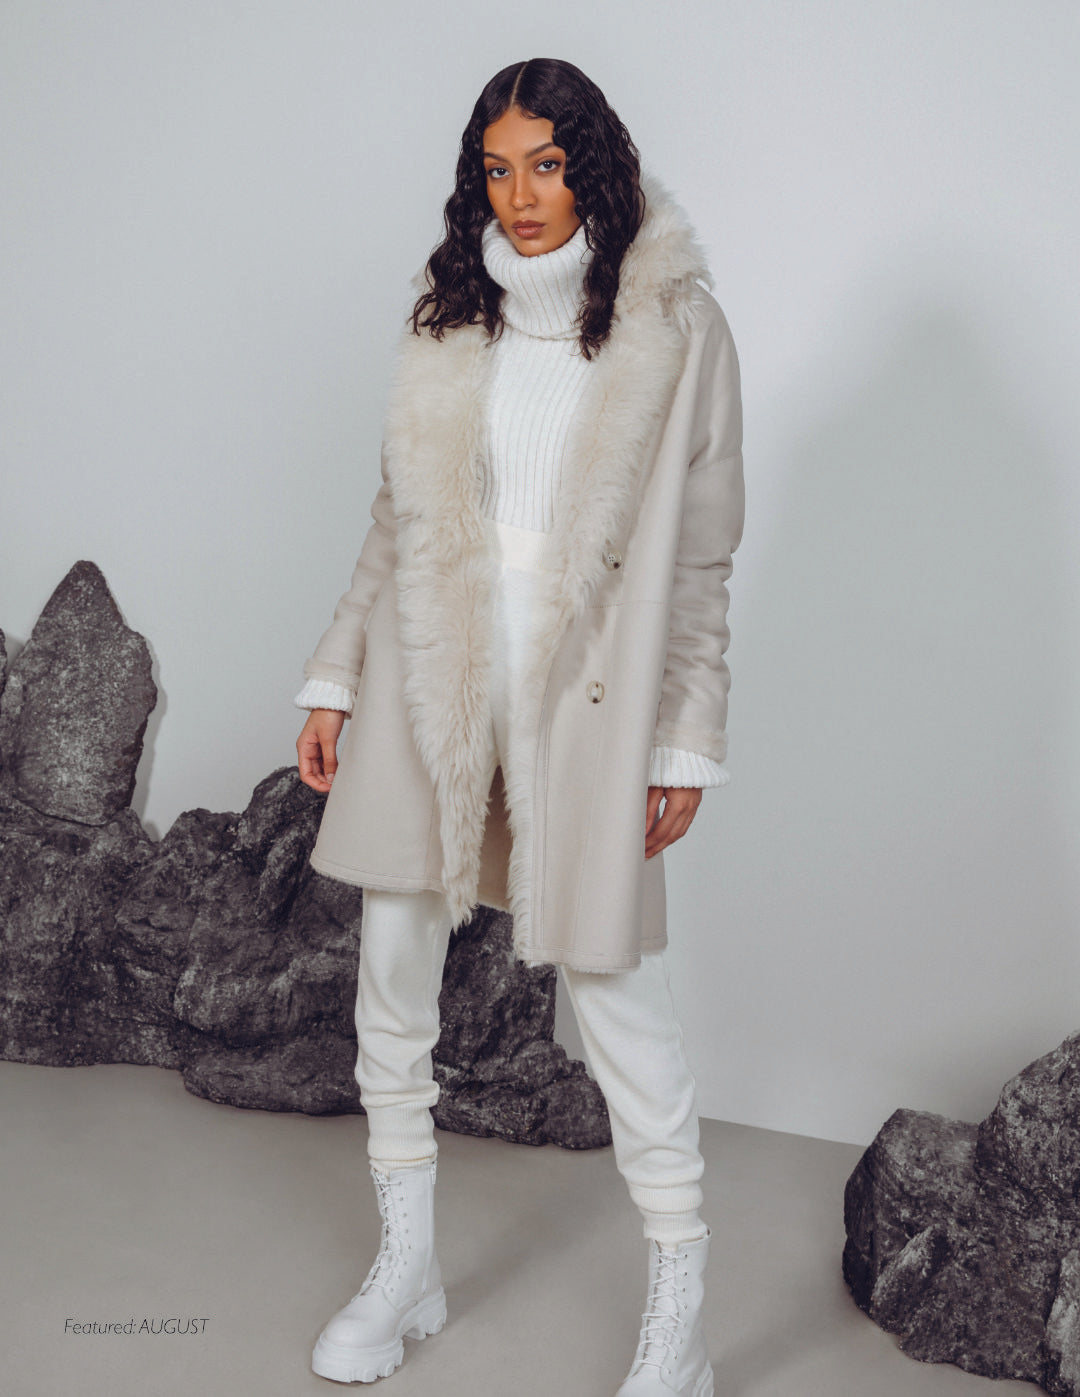 HISO 2021 White Label Campaign Images